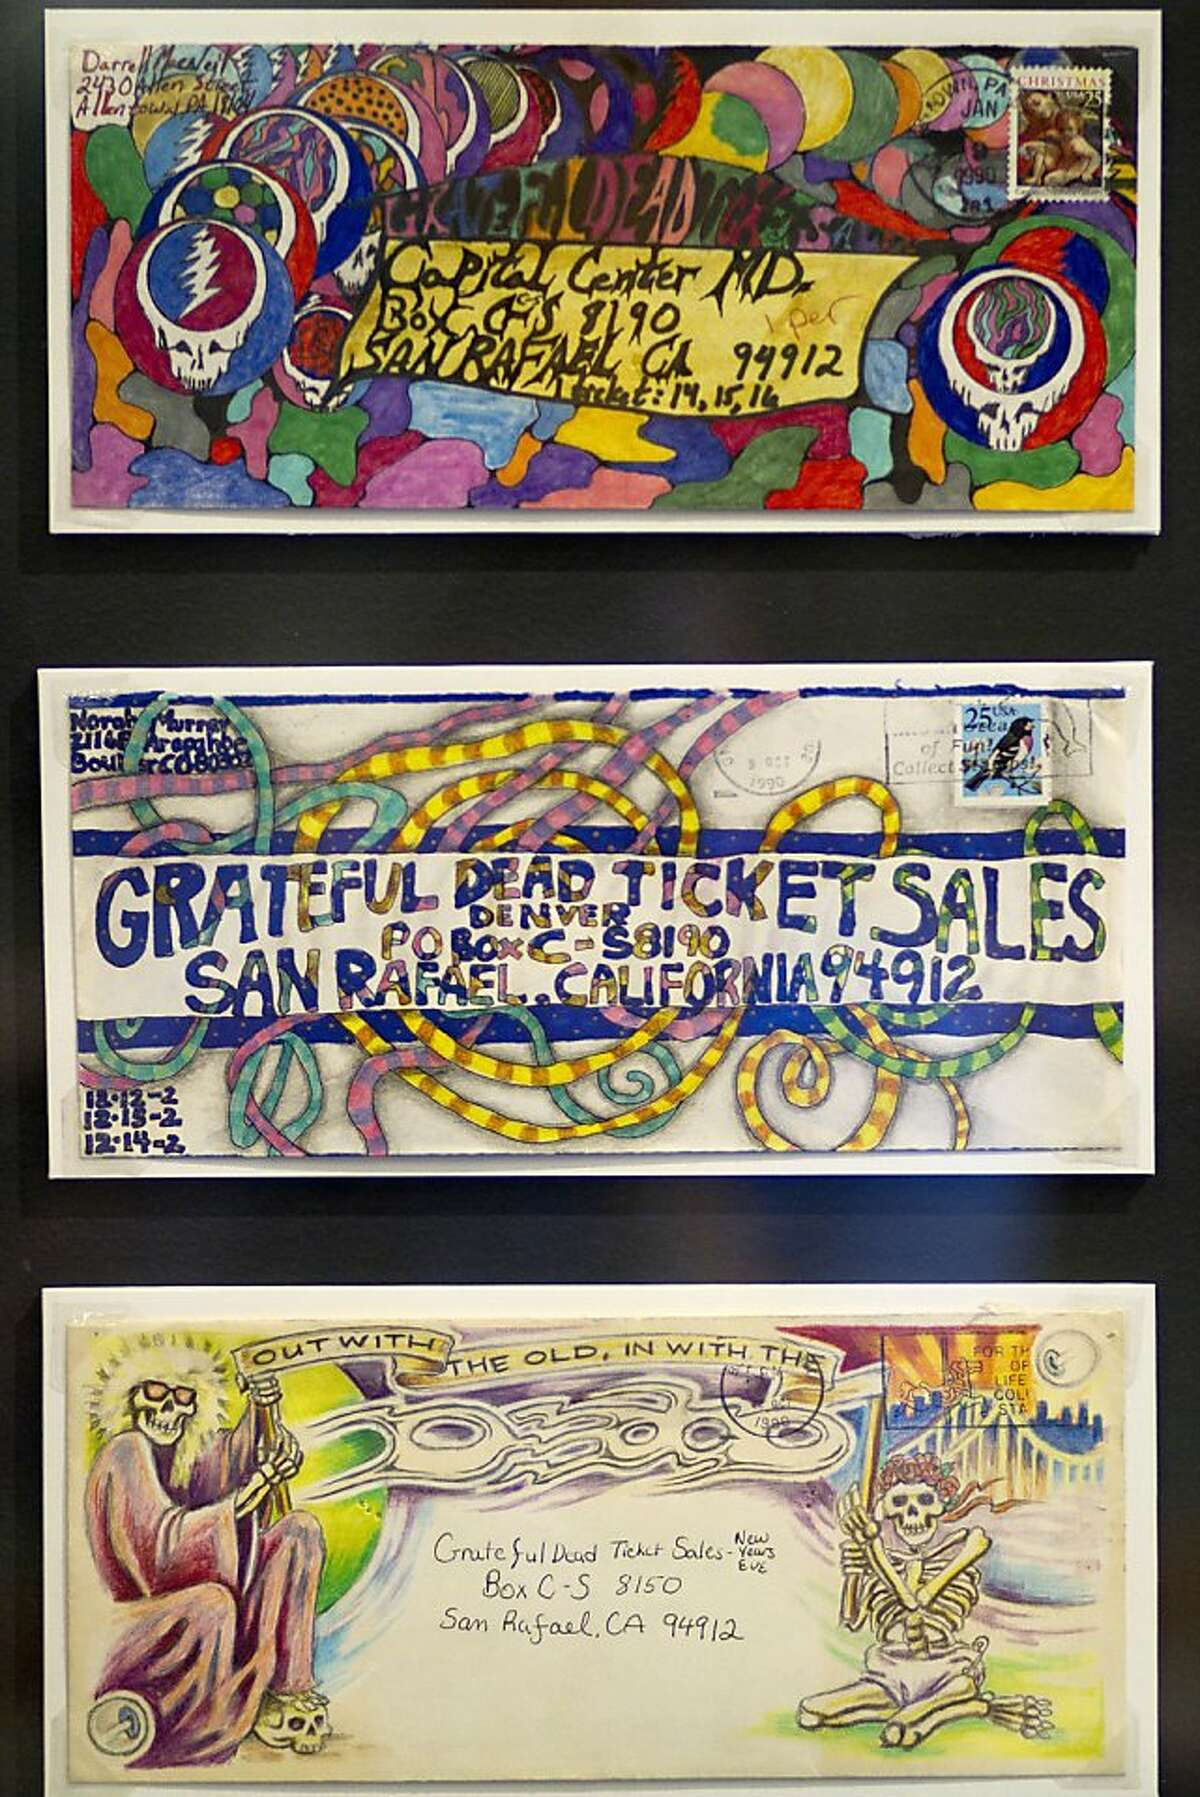 Fan art on envelopes was encouraged by the Grateful Dead with promises of free tickets for the best artwork. The Grateful Dead Archive has opened to the public on the University of California Santa Cruz's McHenry Library this week.